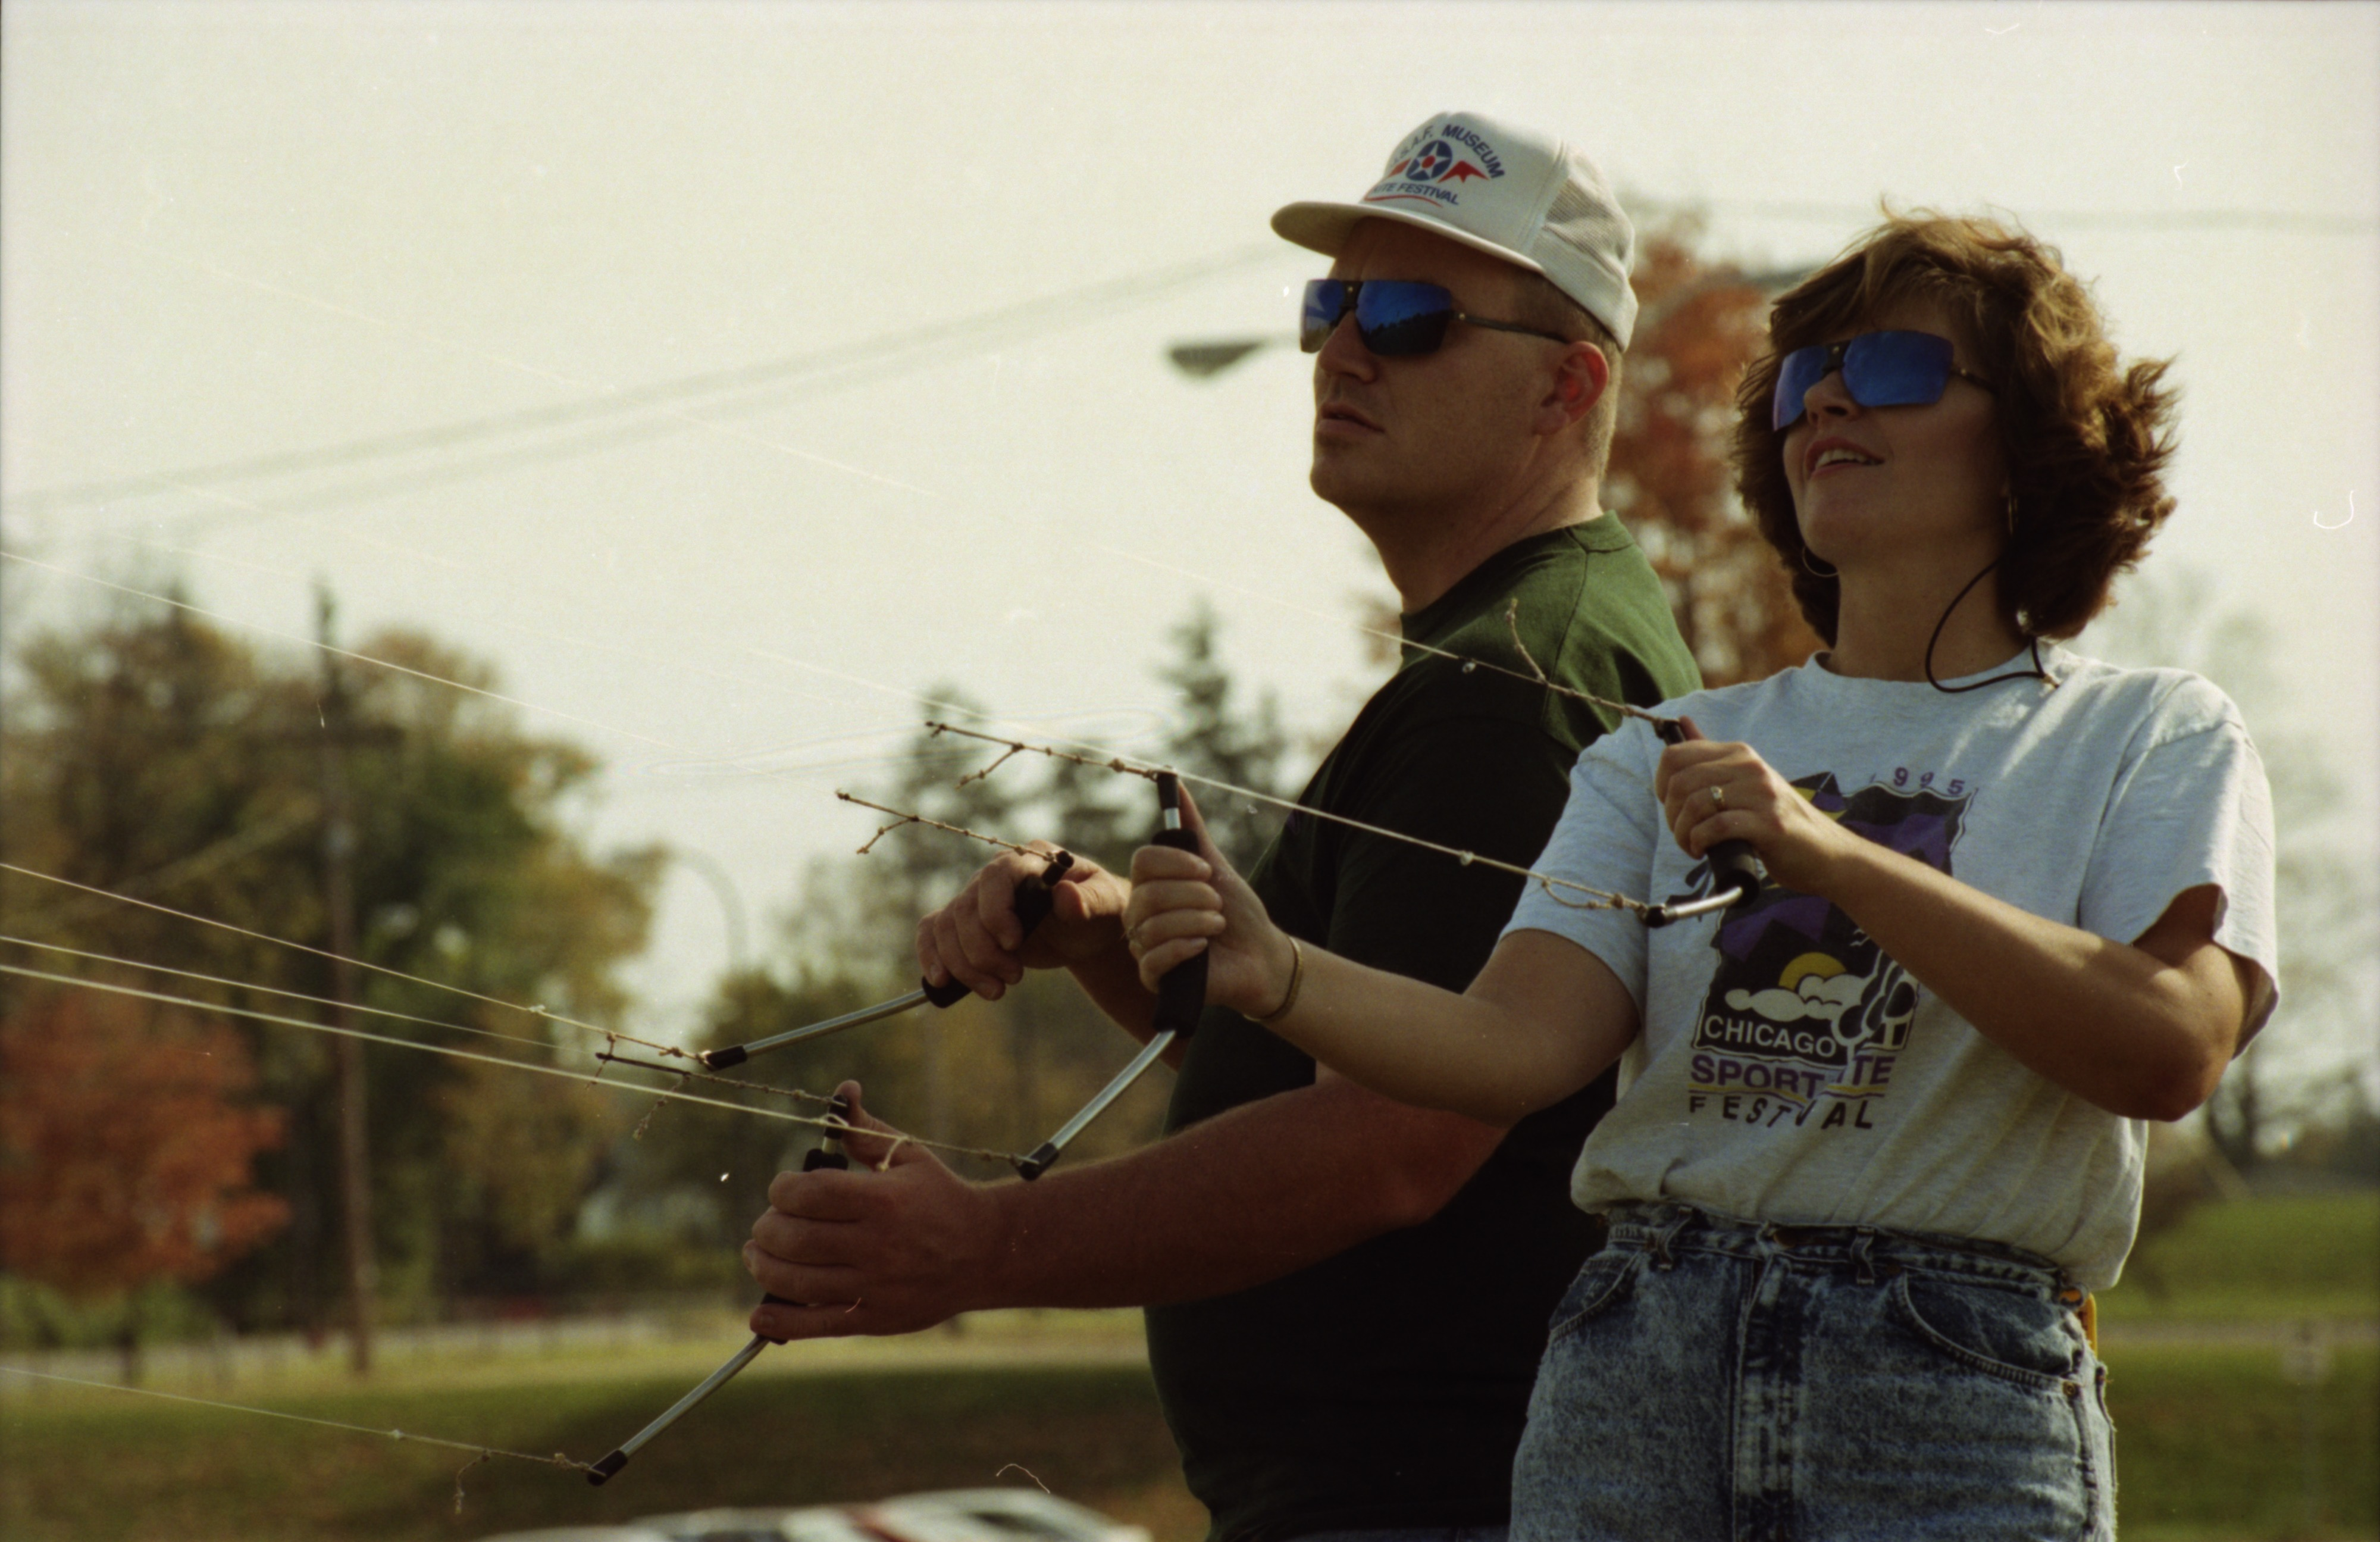 Sport Kite Flyers, October 1995 image